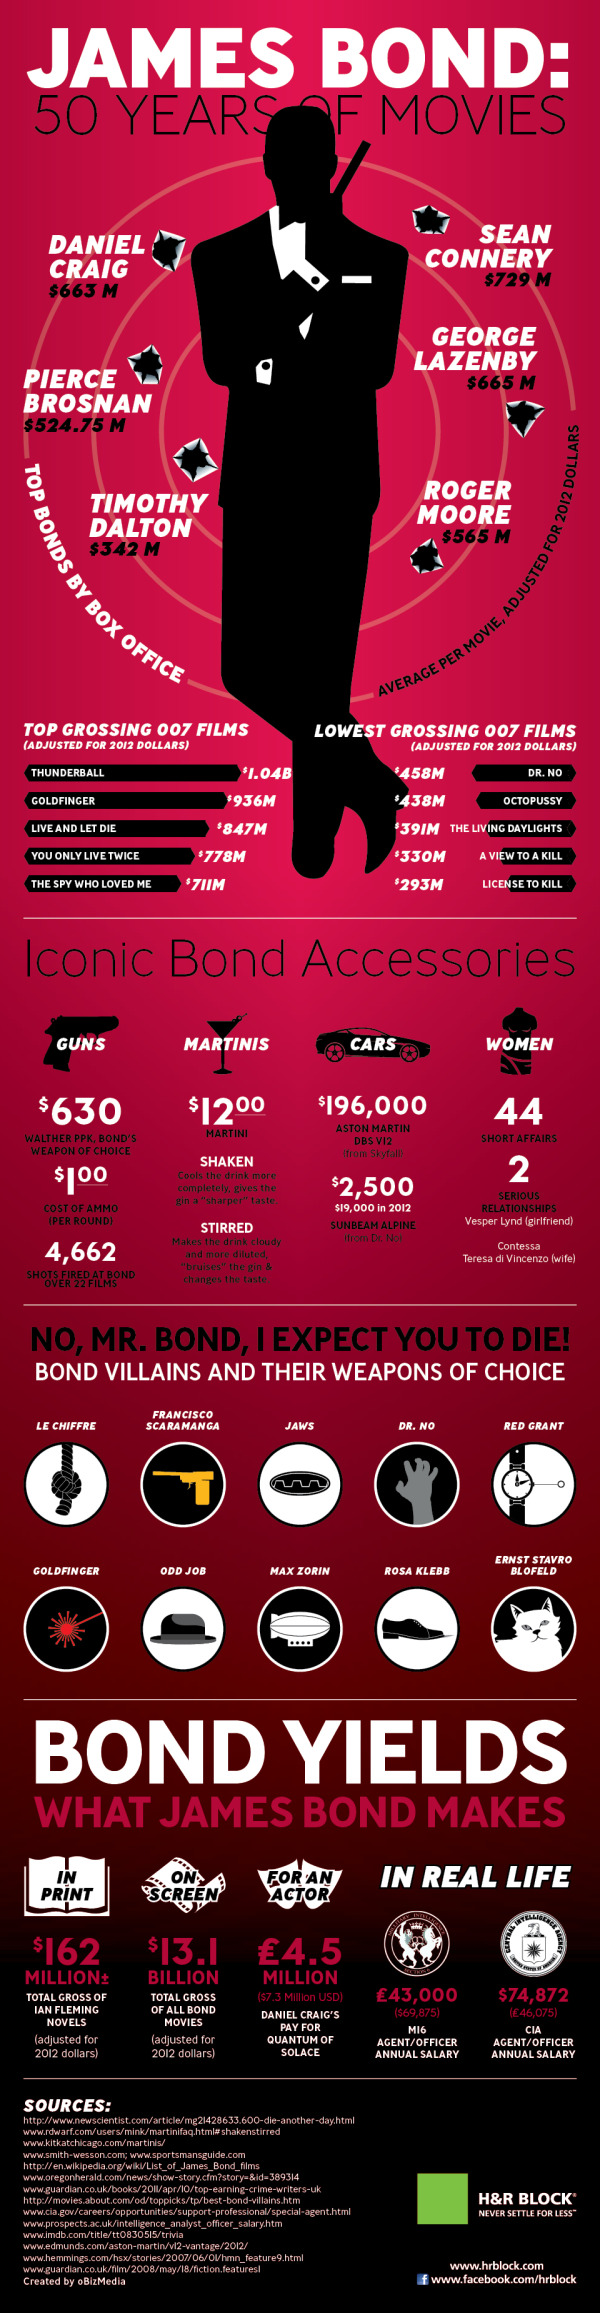 James Bond: 50 Years of Movies infographic